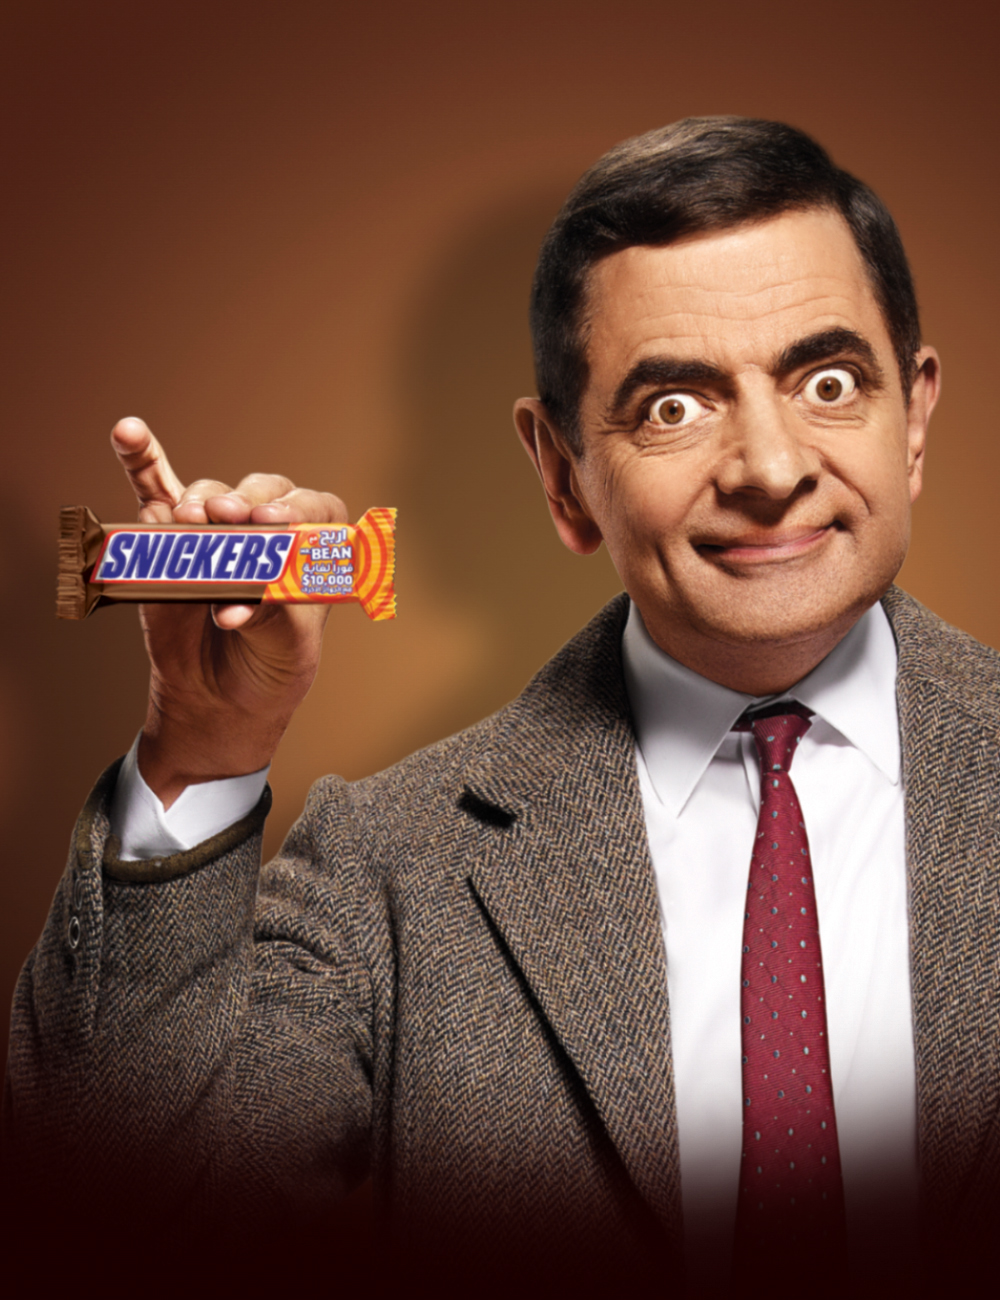 Mr Bean Snickers Mr Bean On Behance